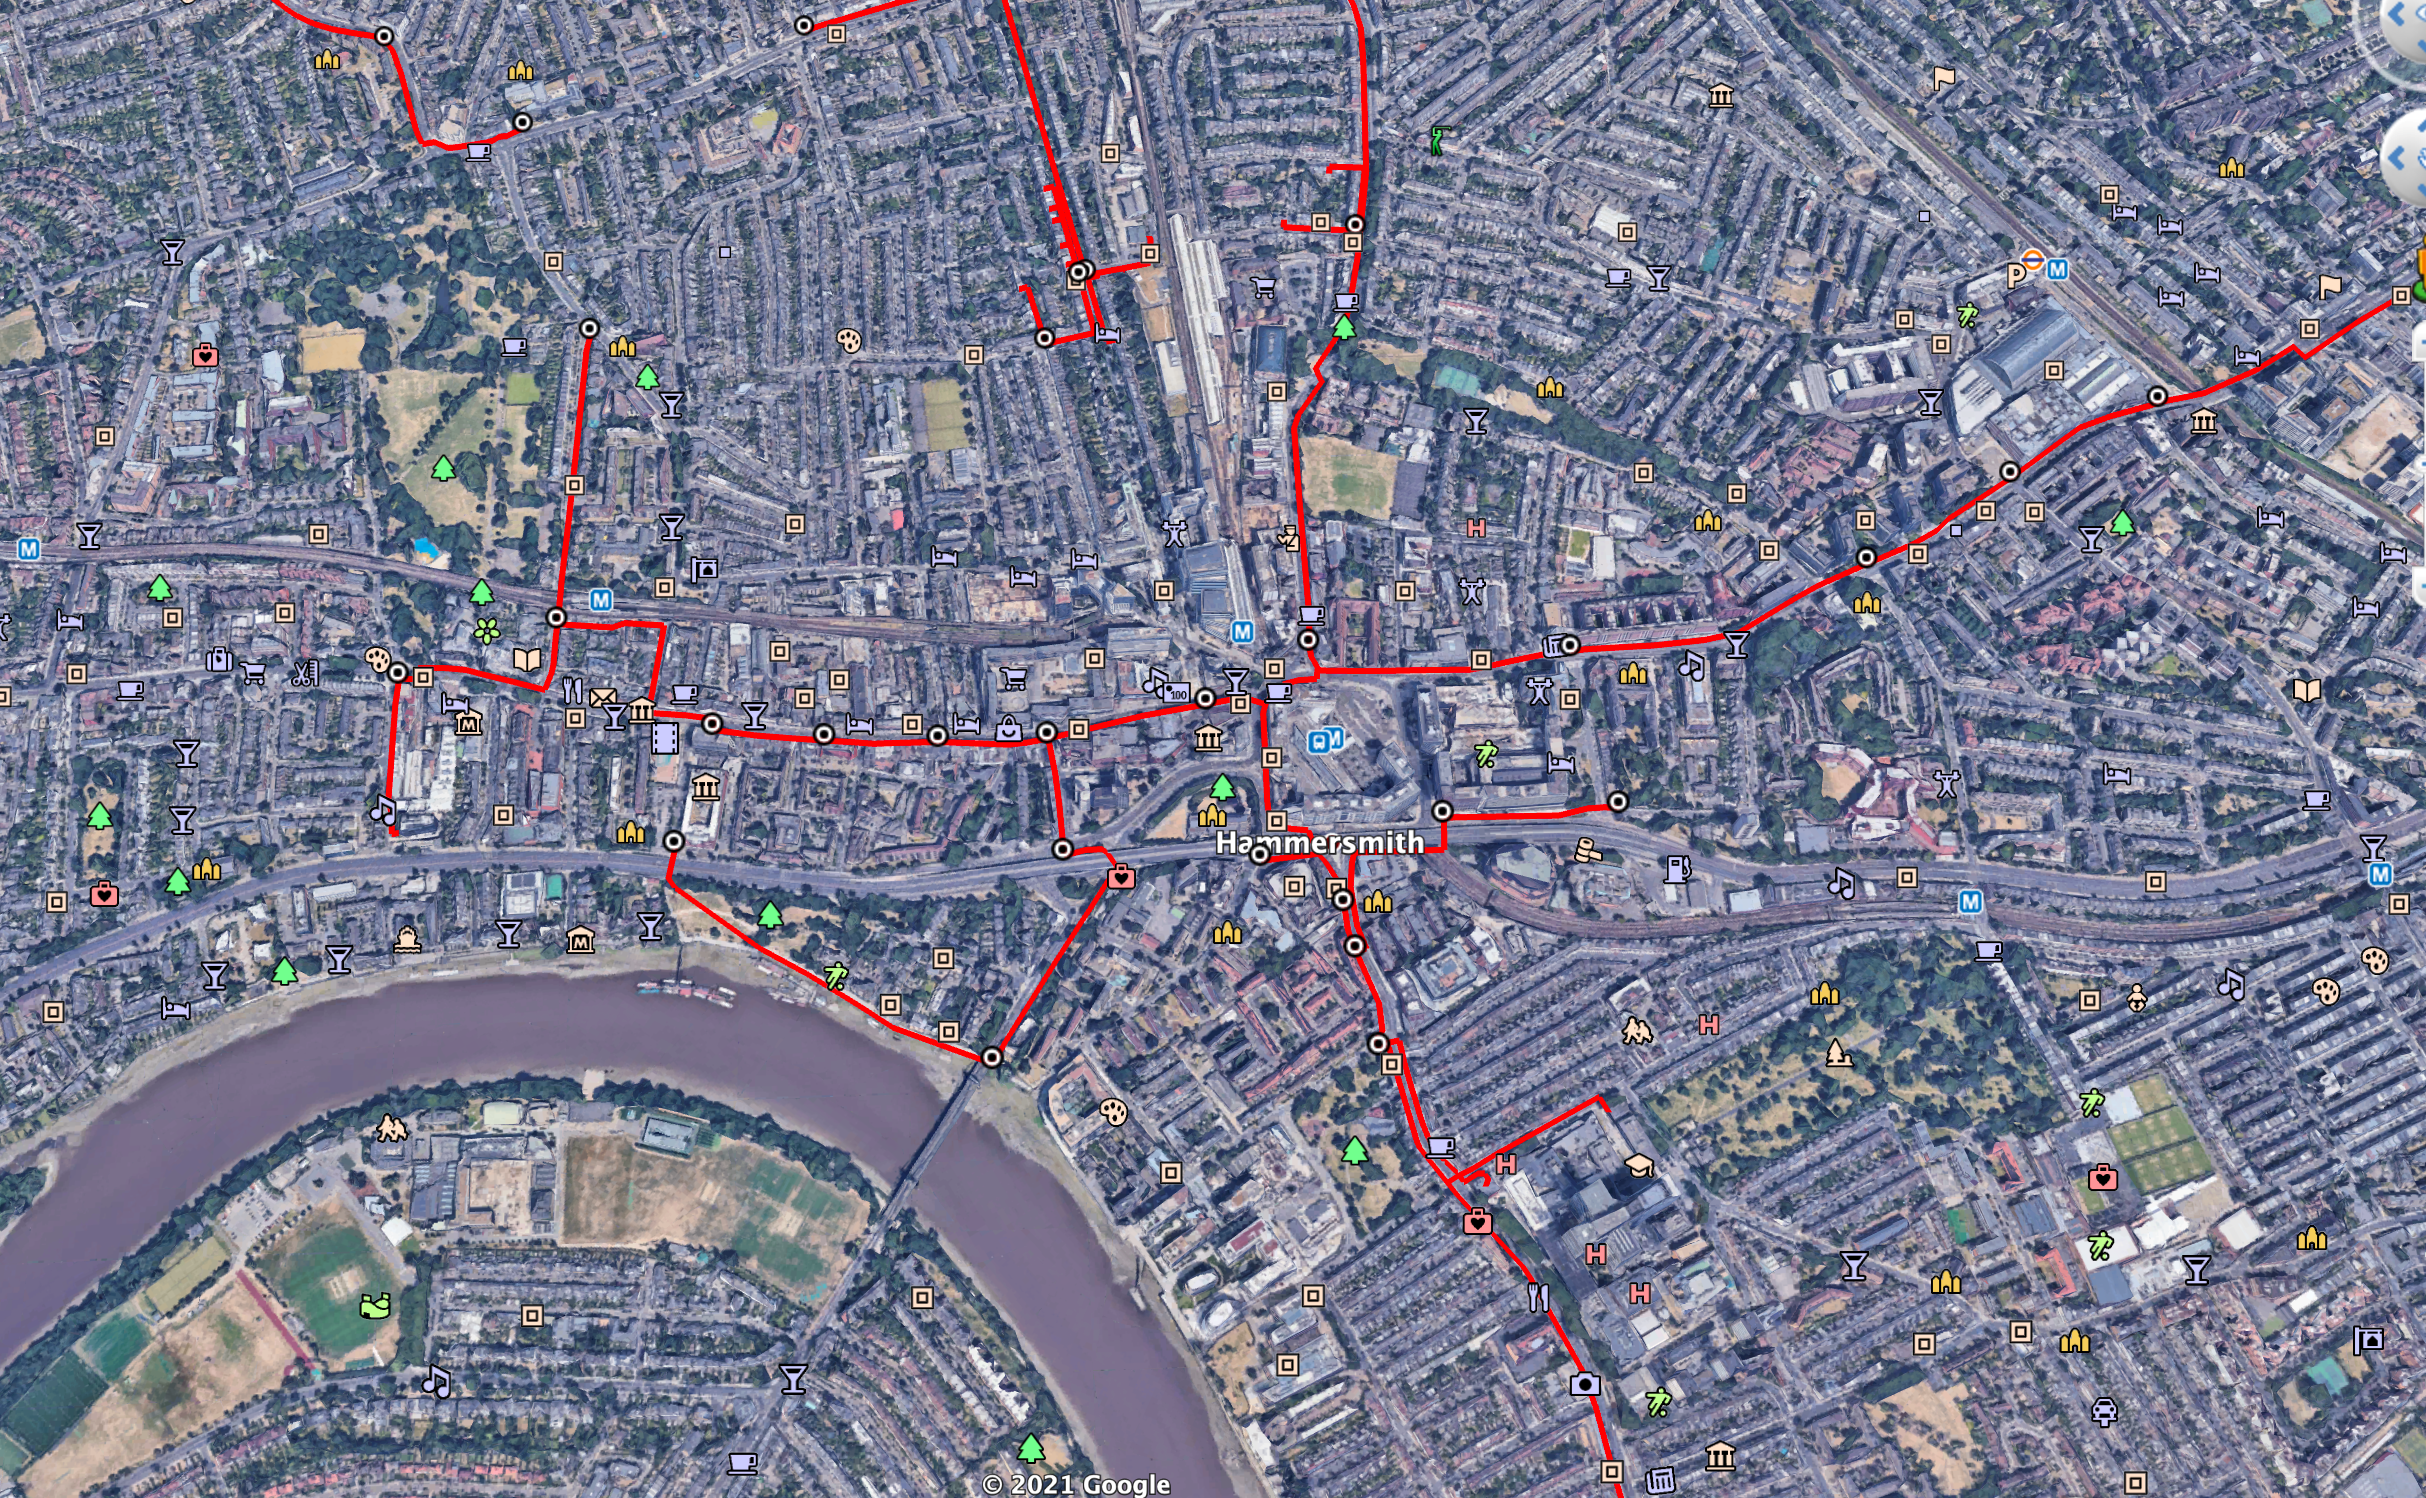 Hammersmith overhead view of network highlighted in red